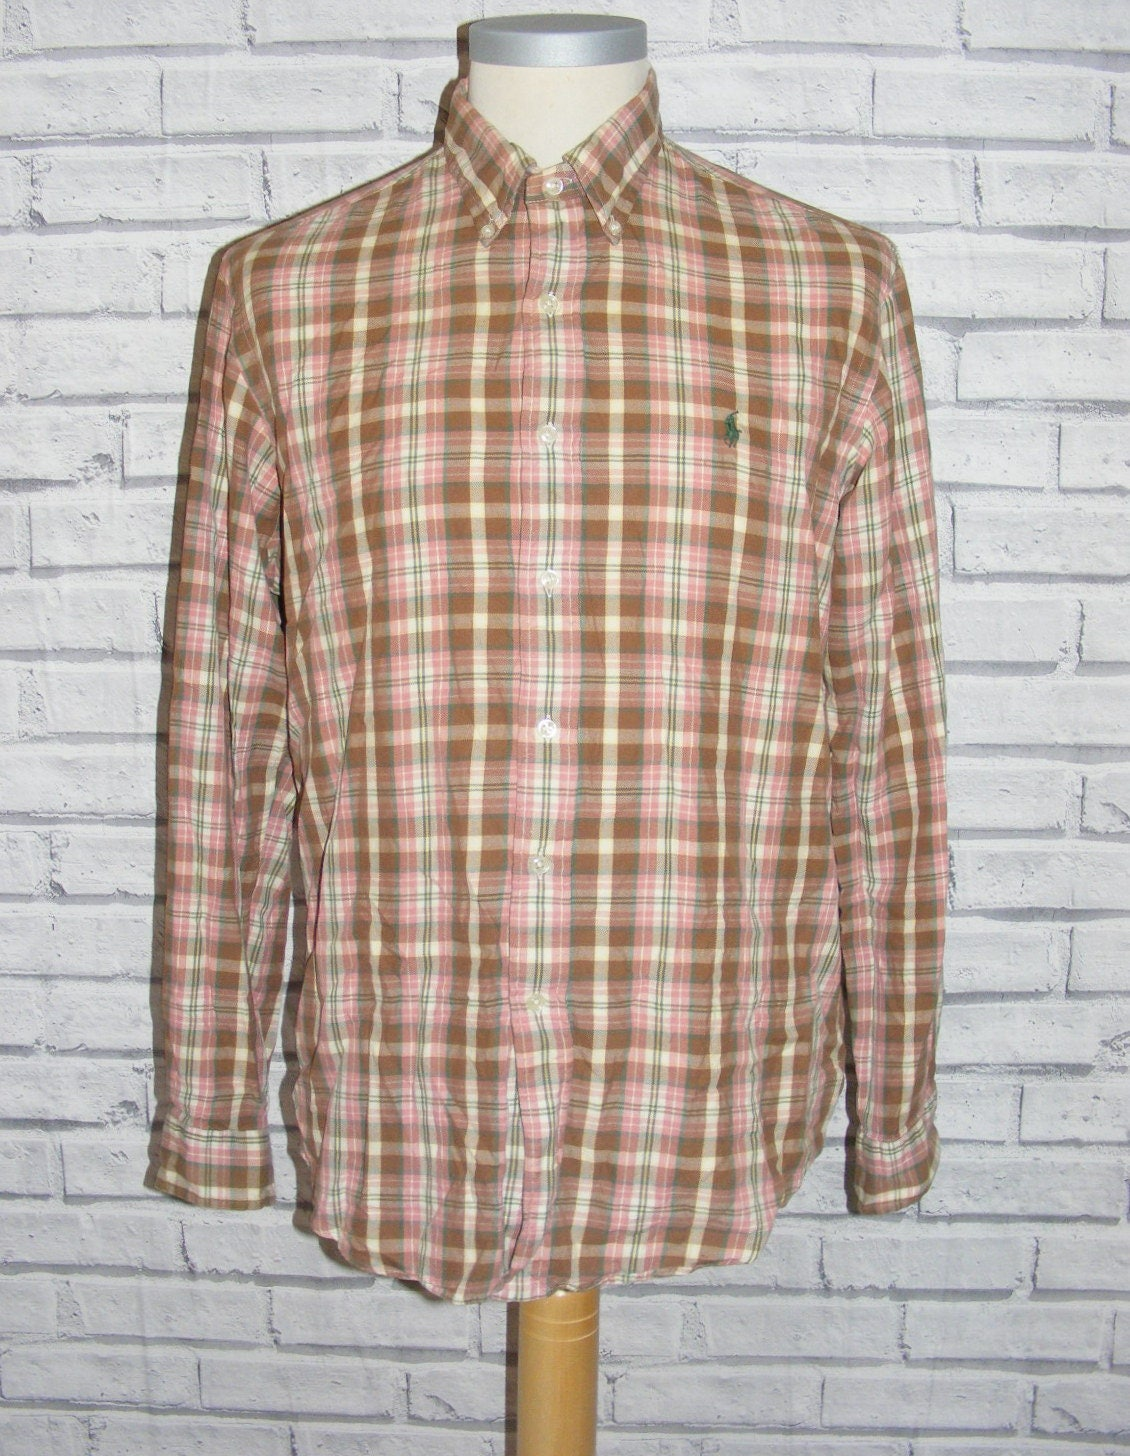 Size L 42 vintage 90s Ralph Lauren button down lslv shirt beige check (HZ11)